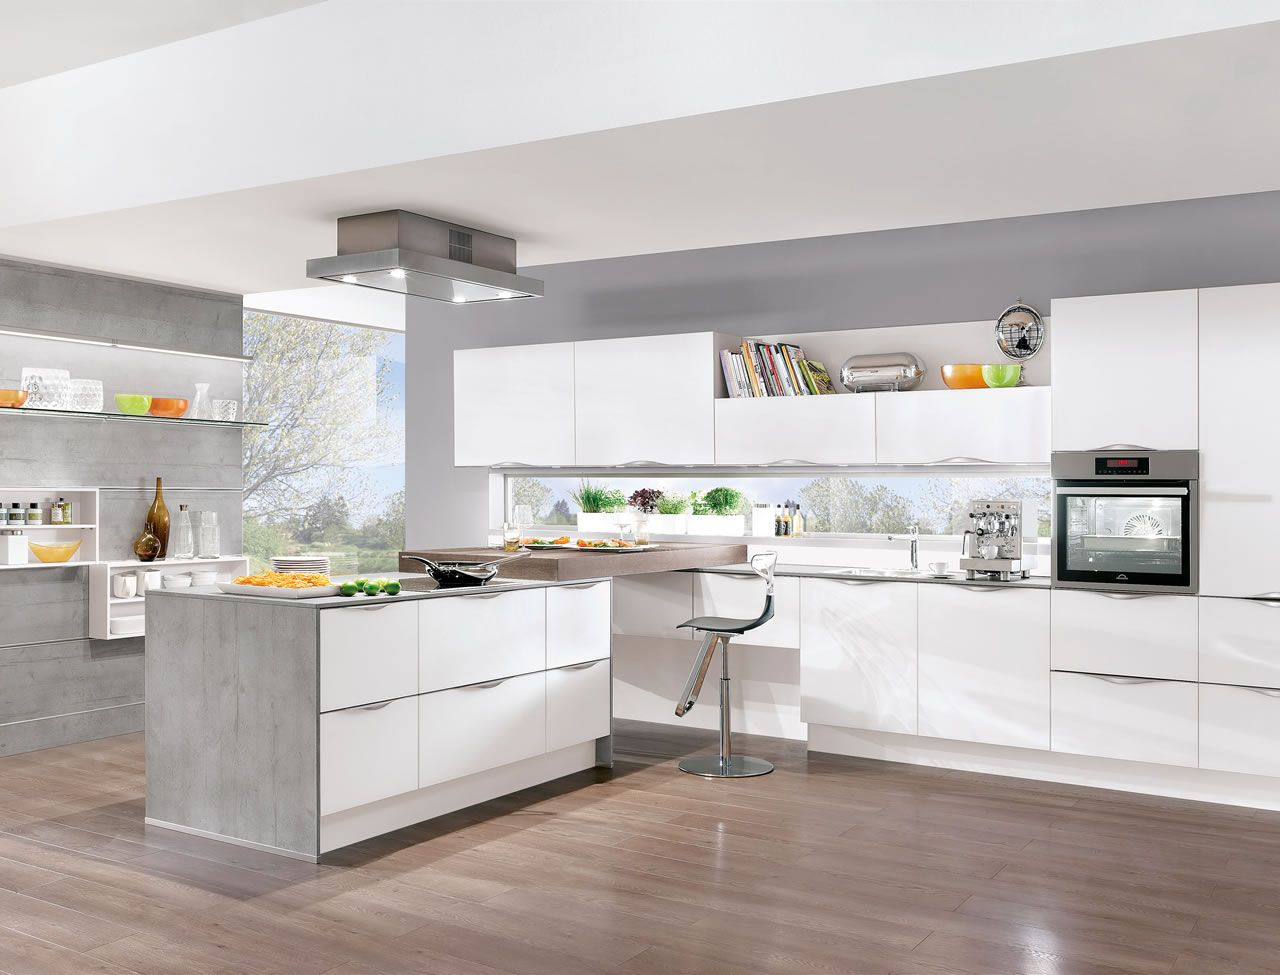 nobilia Küchen - kitchens - nobilia | Produkte | Kitchen ...